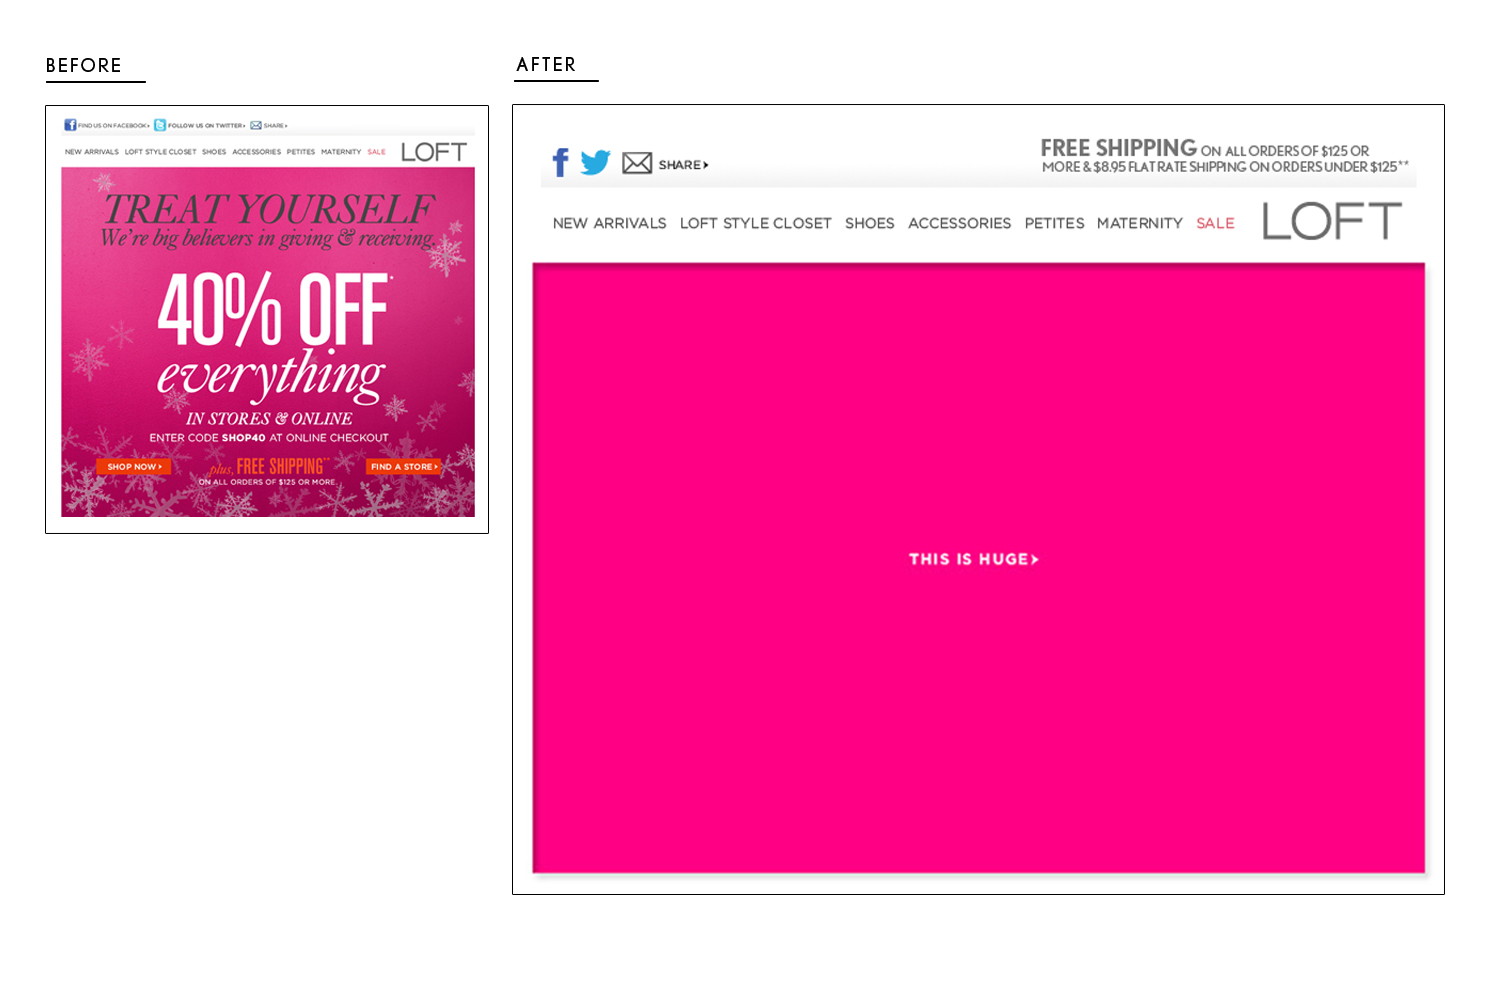 Starting with Cyber Monday, Camila was able to create a layout without the predictable large sale message that dominates the landscape during the Holiday season. The email generated historic metrics and revenue for LOFT.